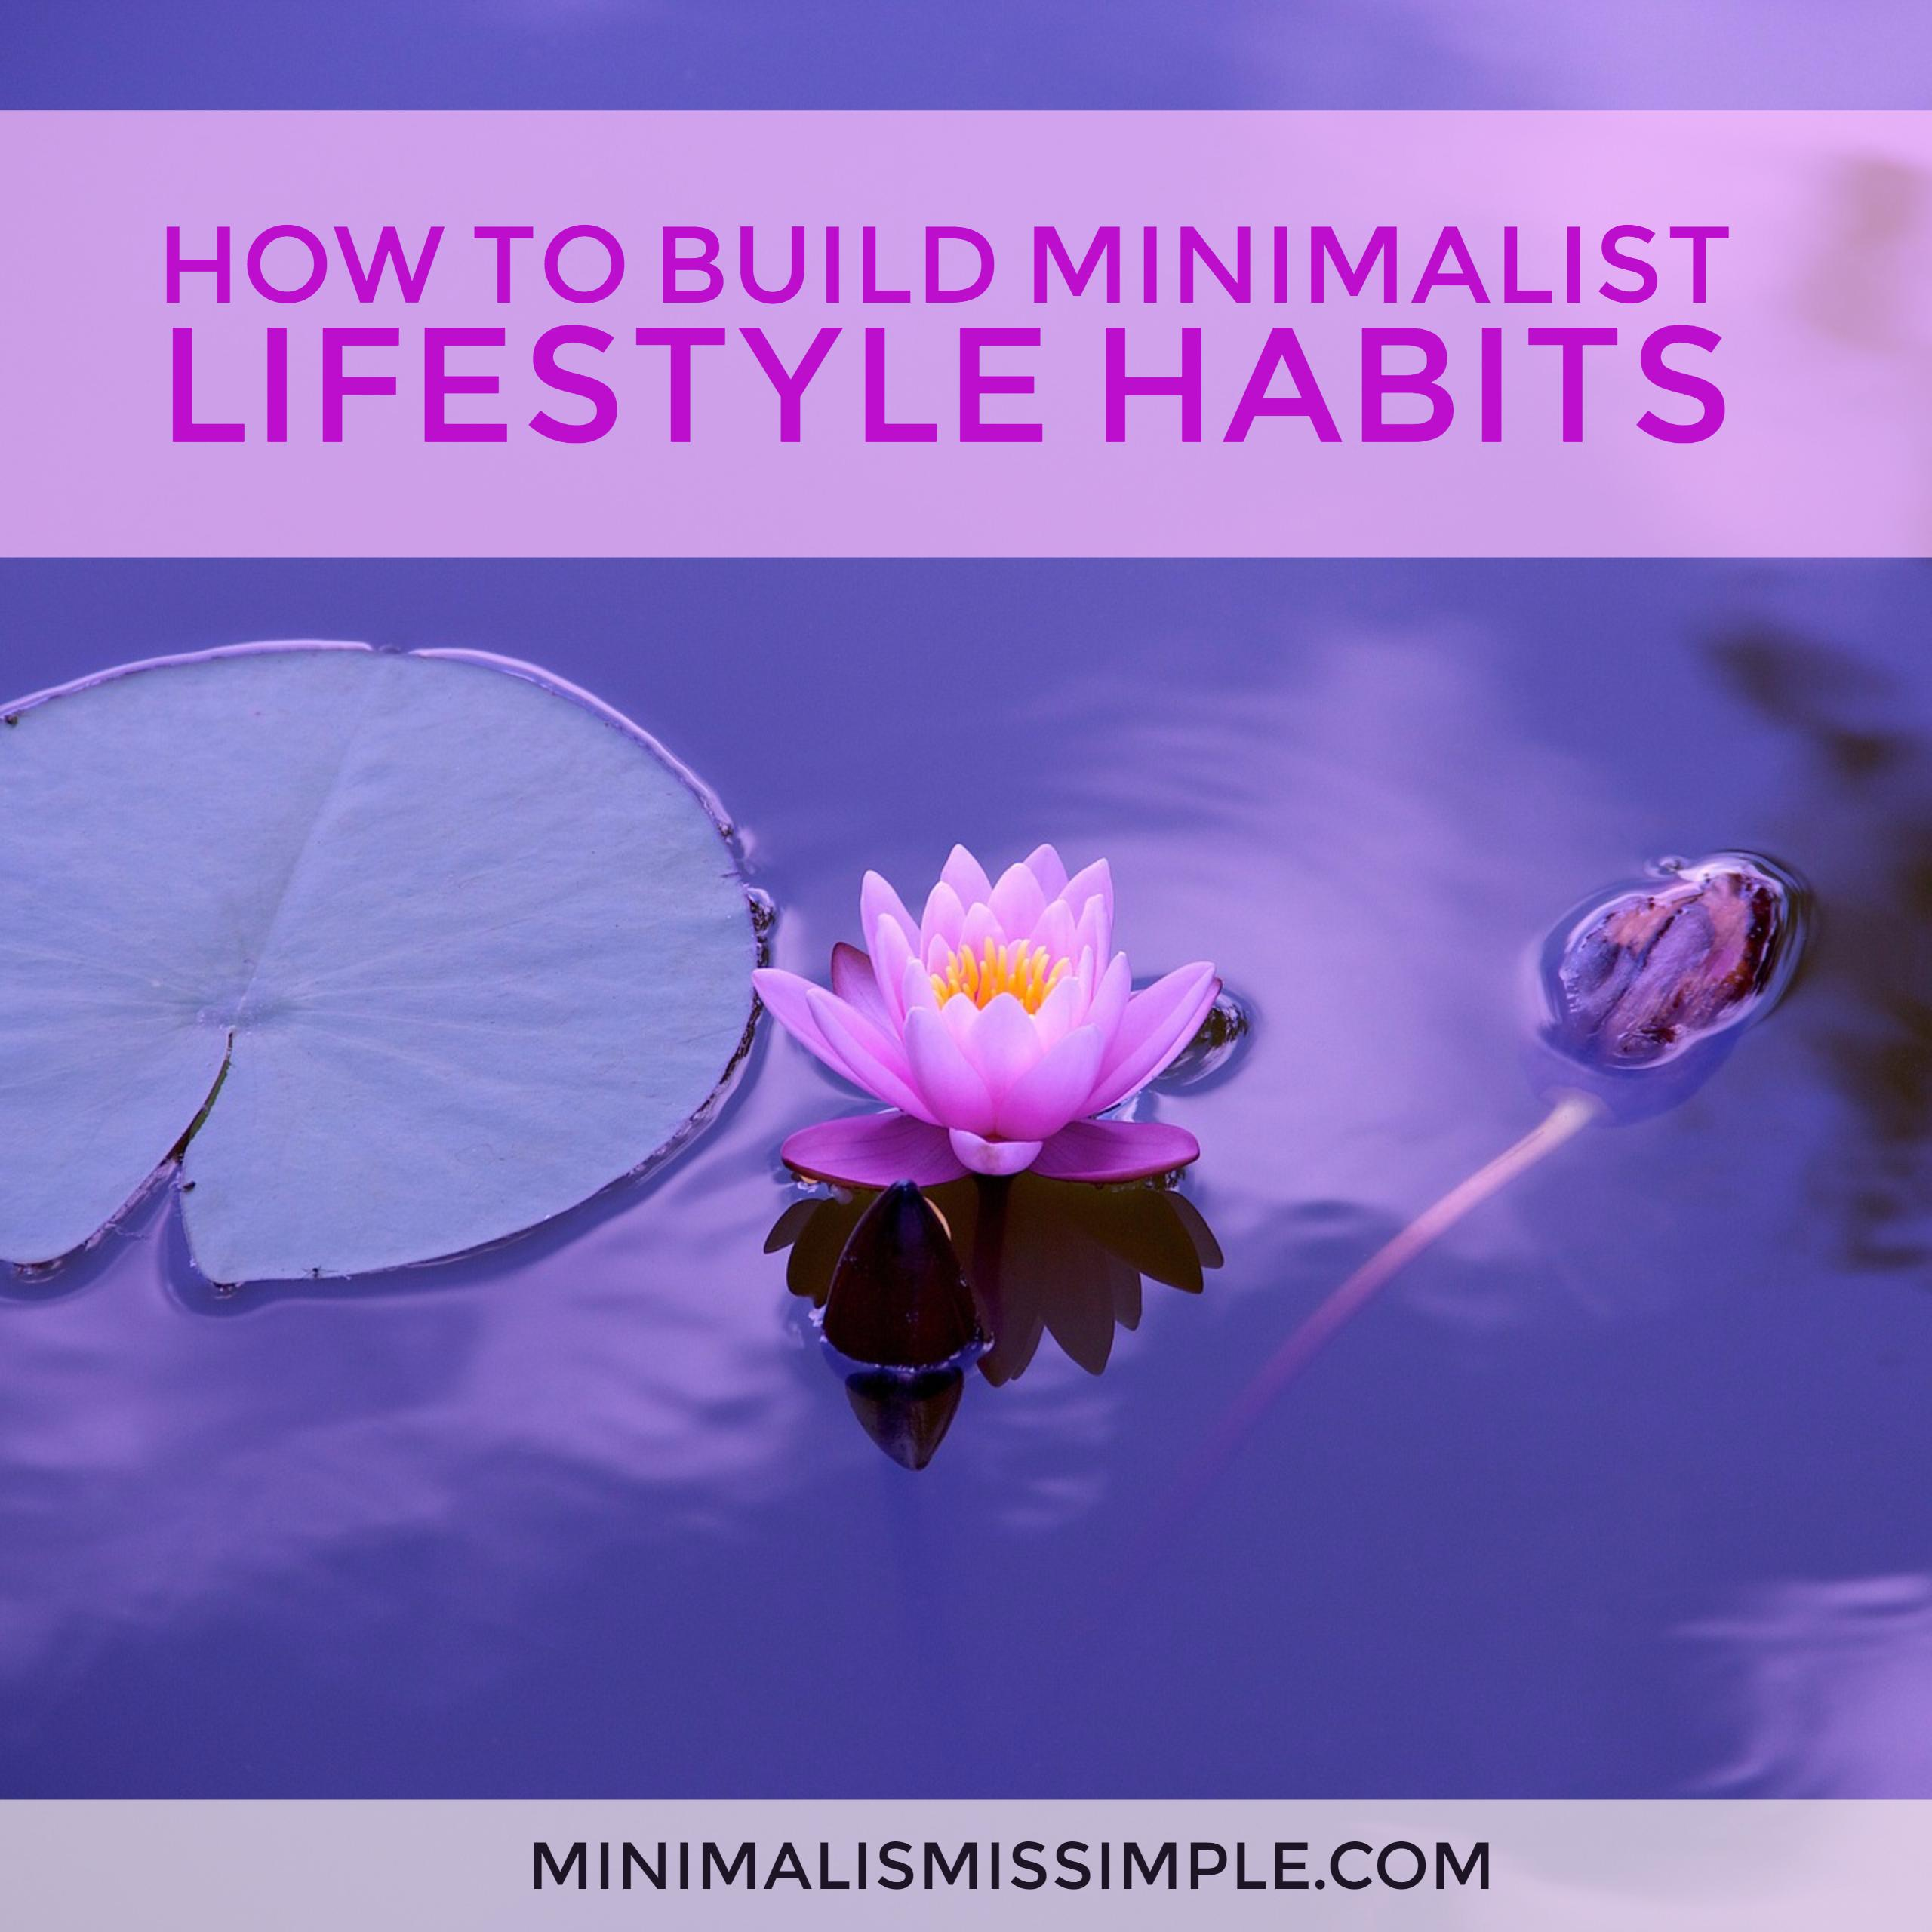 how to build minimalist habits minimalismissimple.com